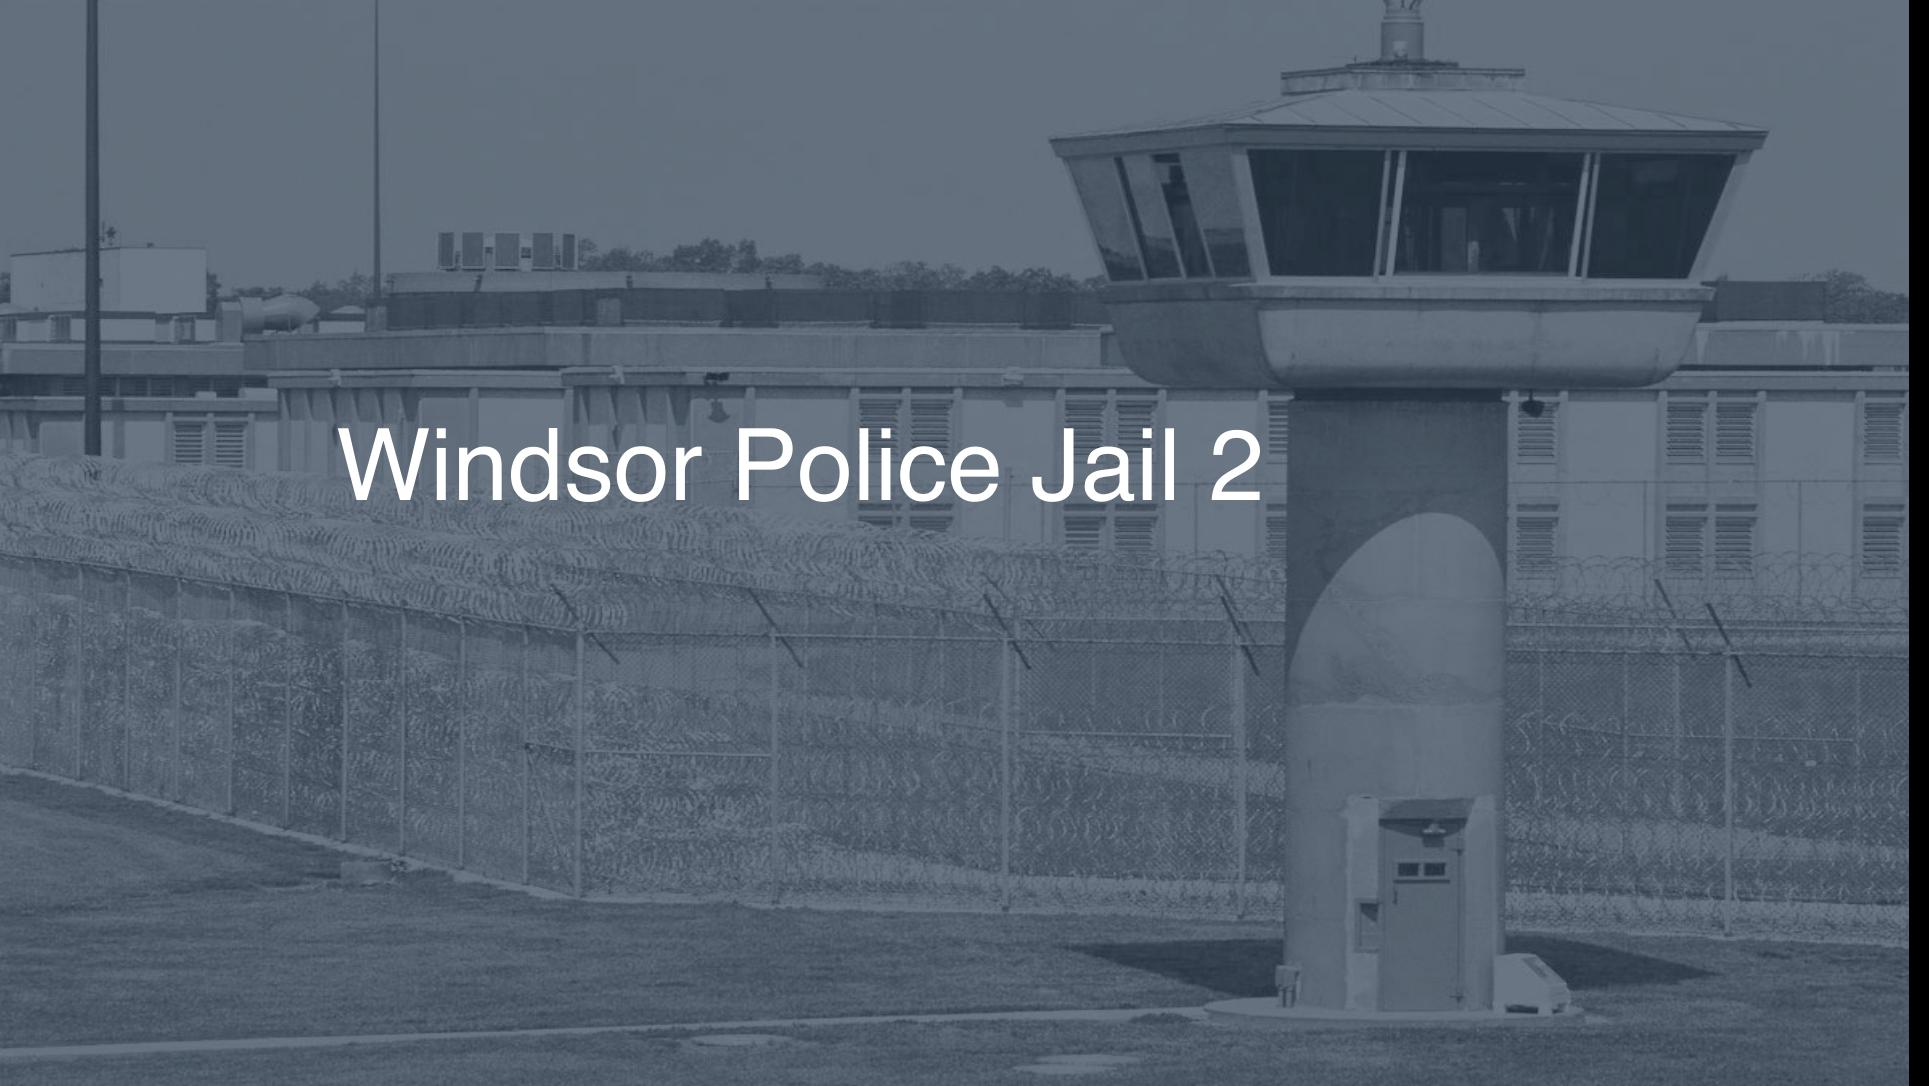 Windsor Police Jail correctional facility picture